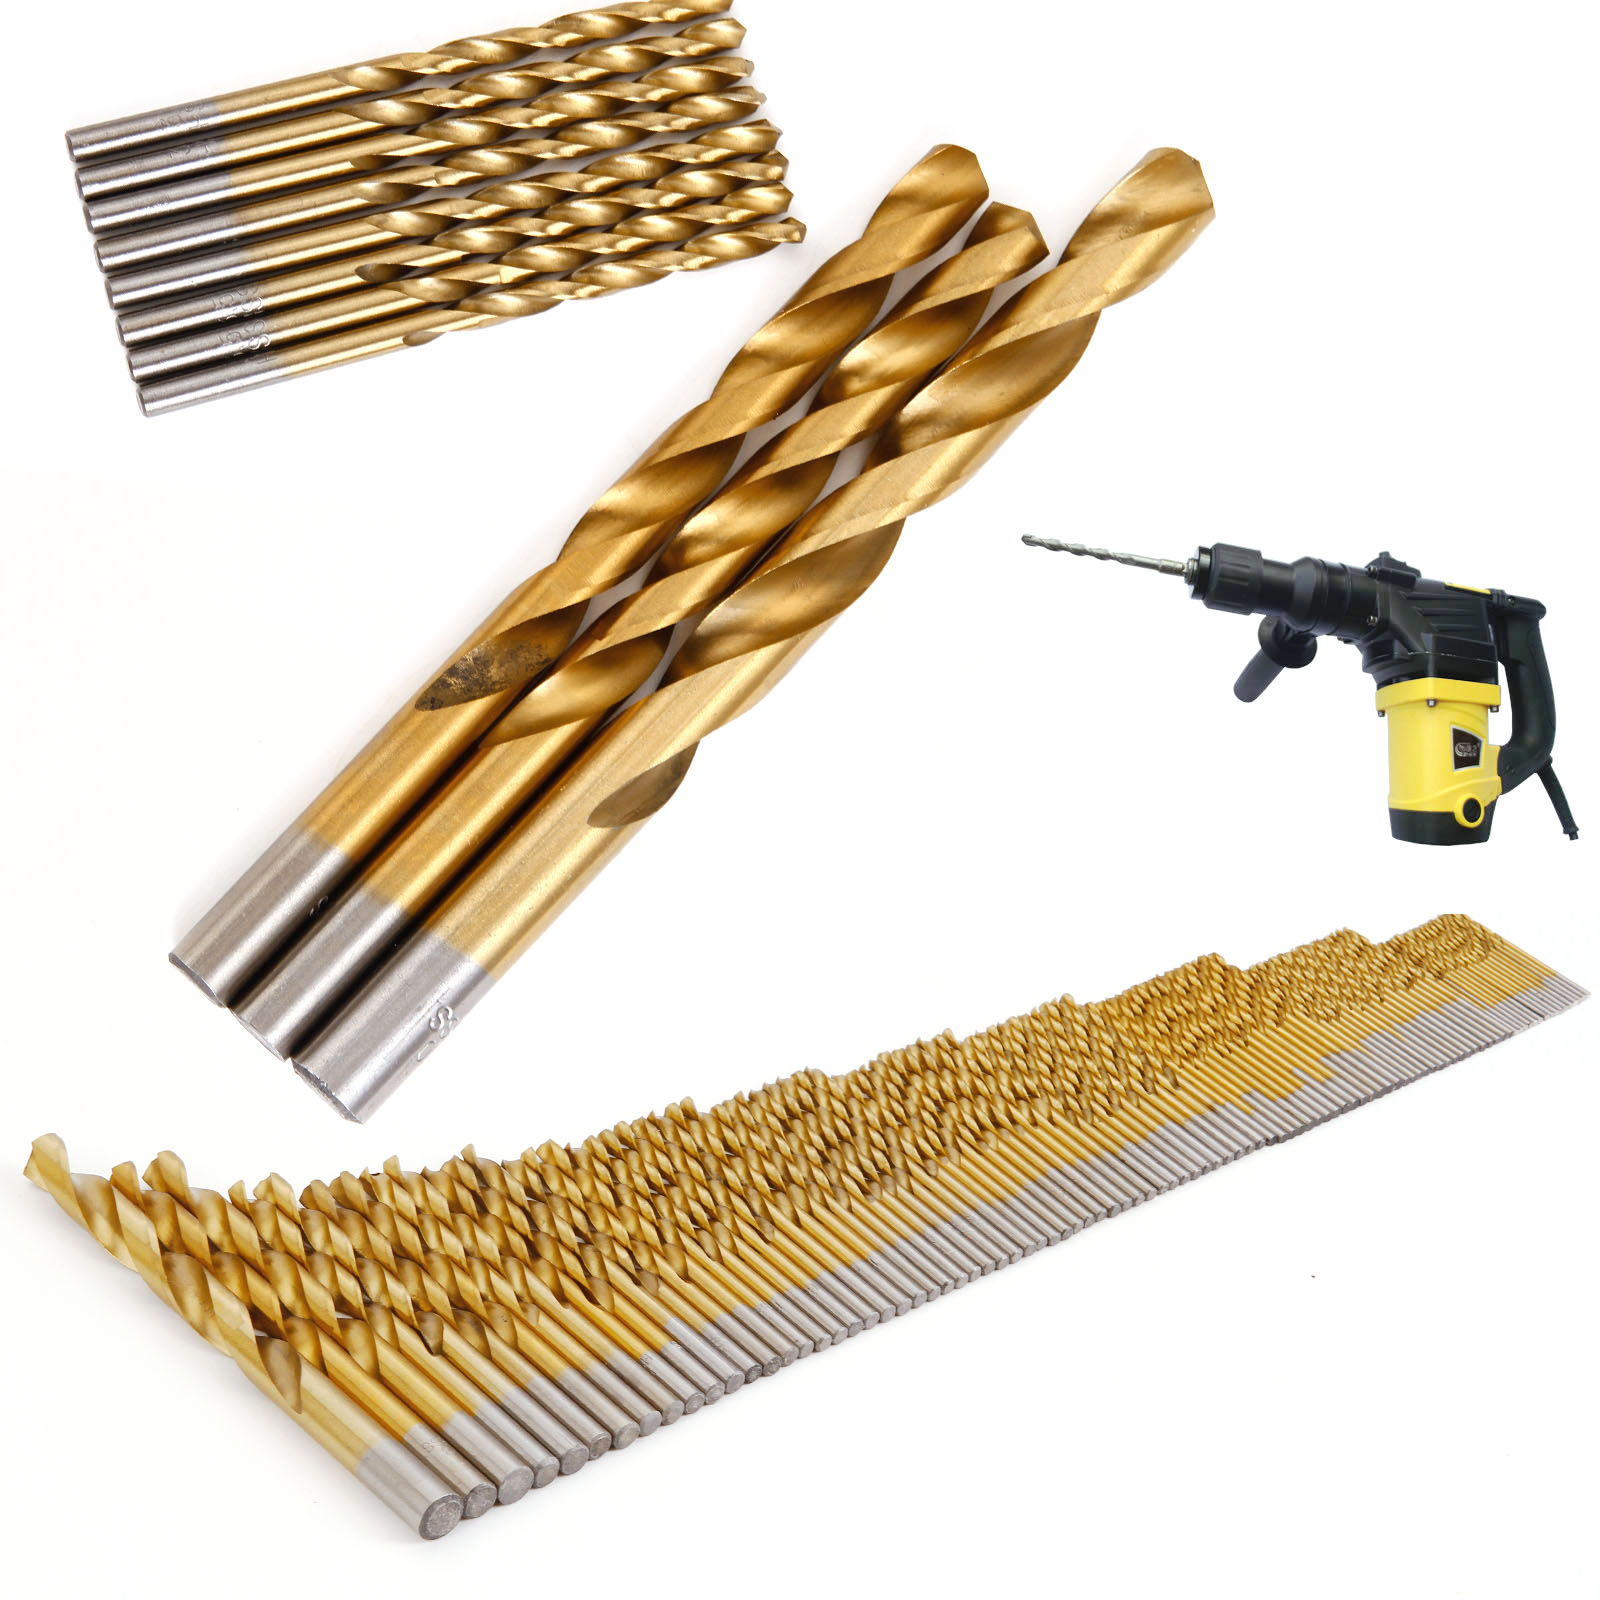 98pieces stainless metal cobalt hss co steel drill bit set. Black Bedroom Furniture Sets. Home Design Ideas